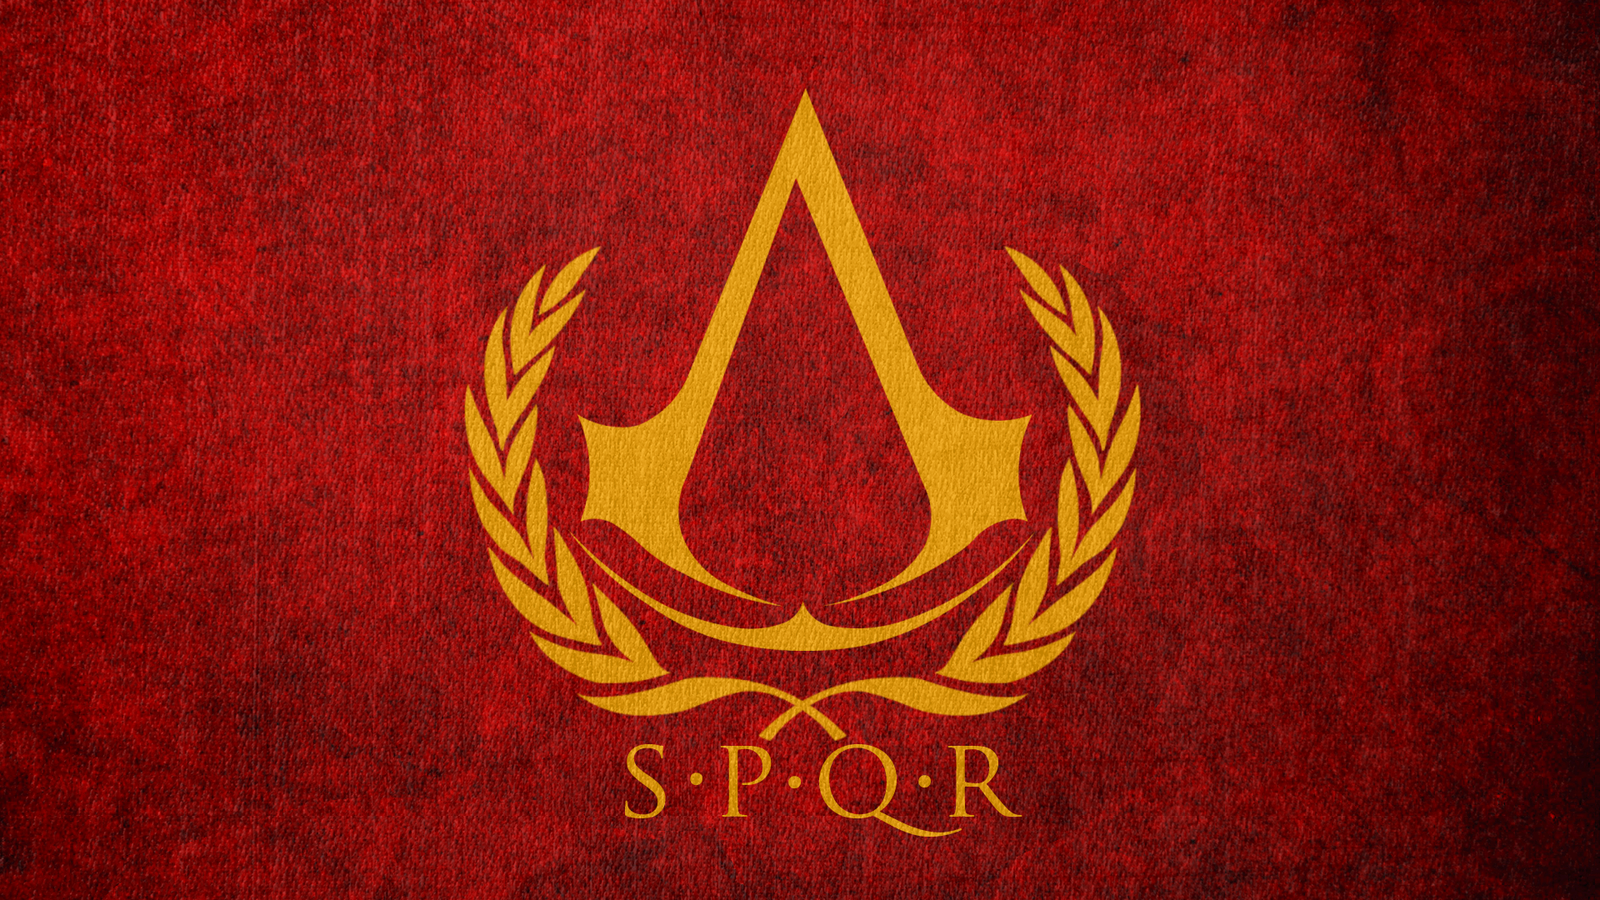 Assassin S Creed Guild Of Rome Flag Assassins Creed Assassins Creed Art Assassin S Creed Hd